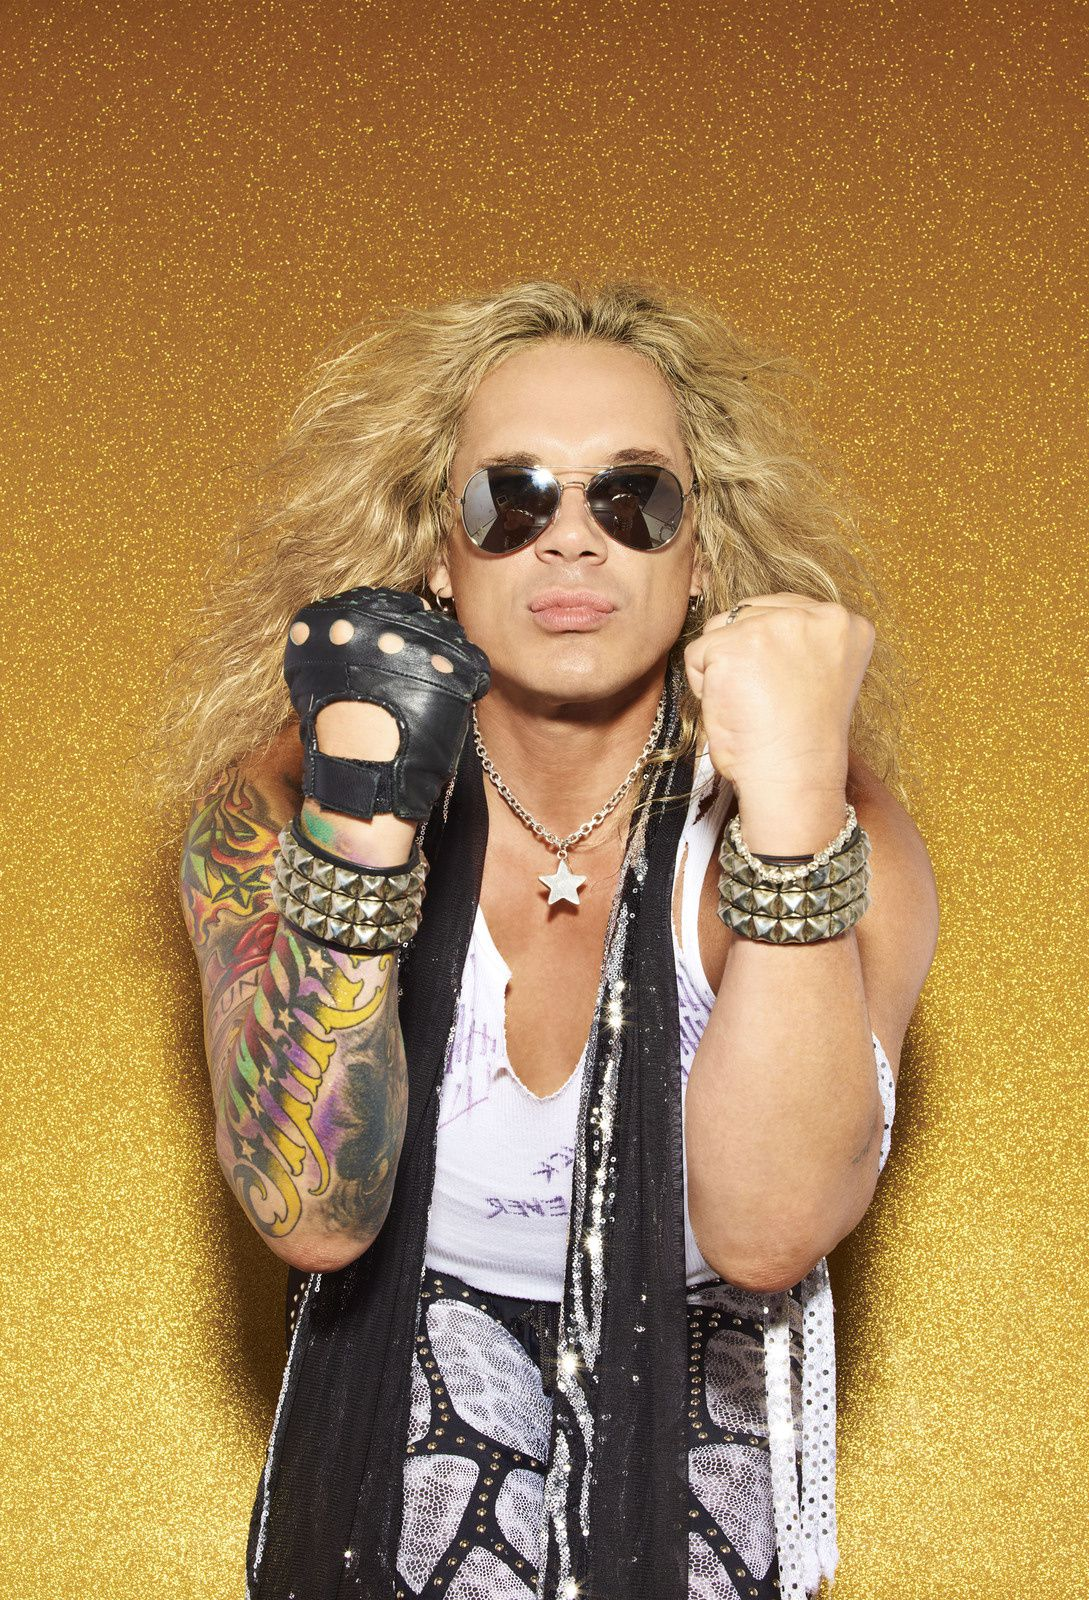 Michael Starr - September 2010 - Steel Panther - Photo by F. Scott Schafer